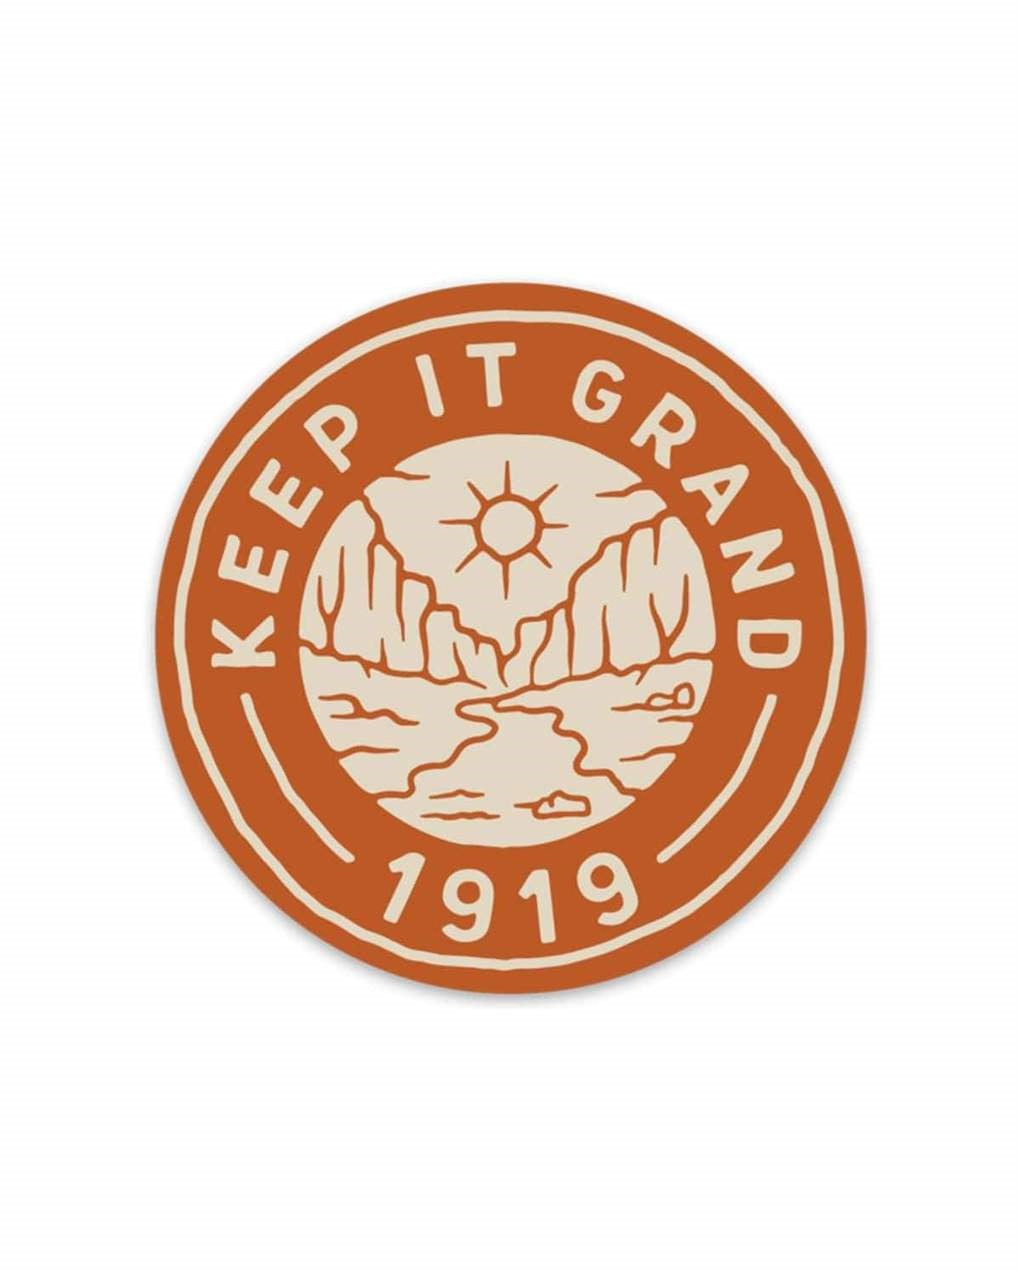 Sticker Keep It Grand 1919